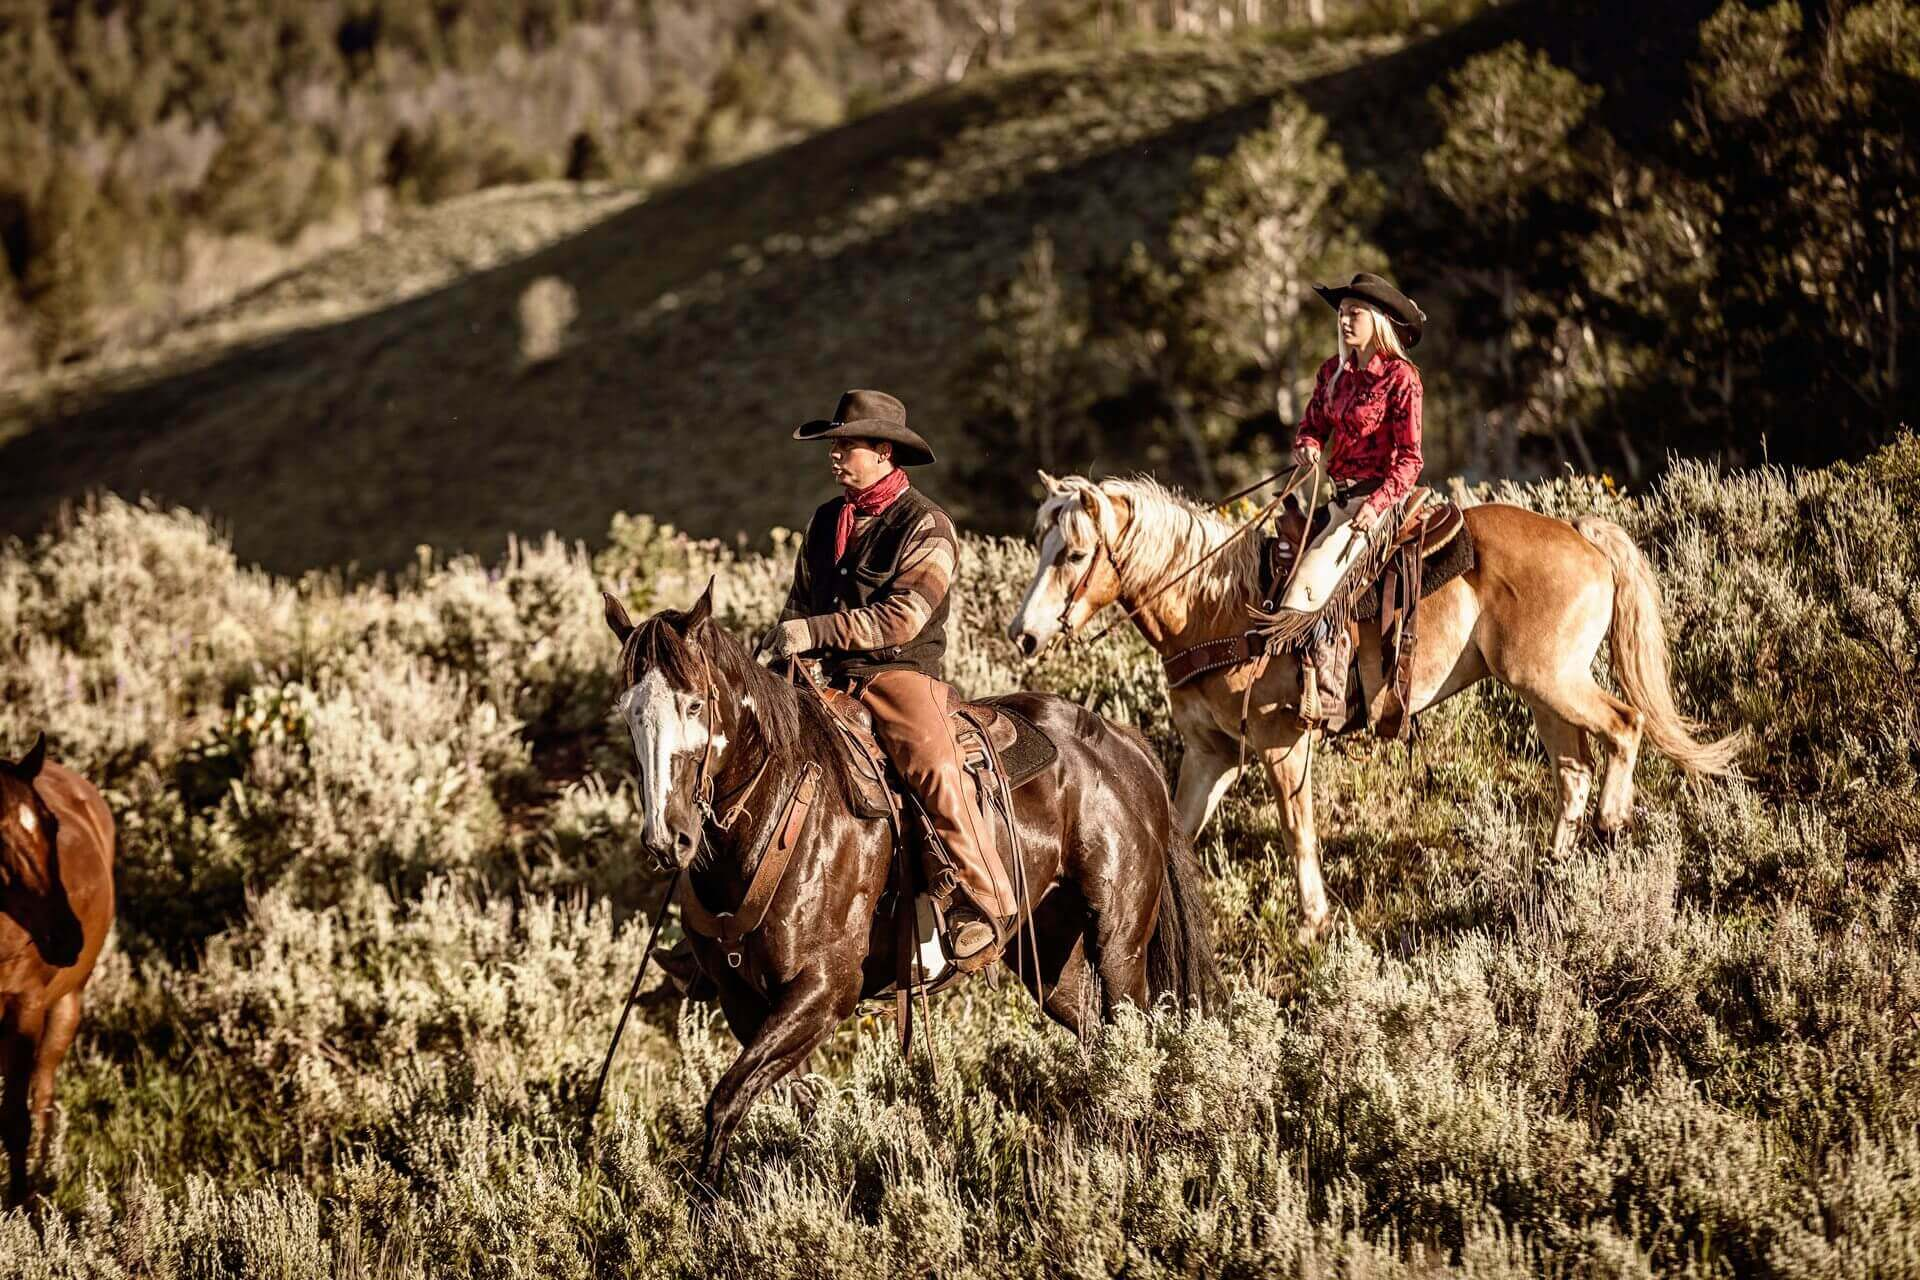 Man and woman horseback riding in the mountains